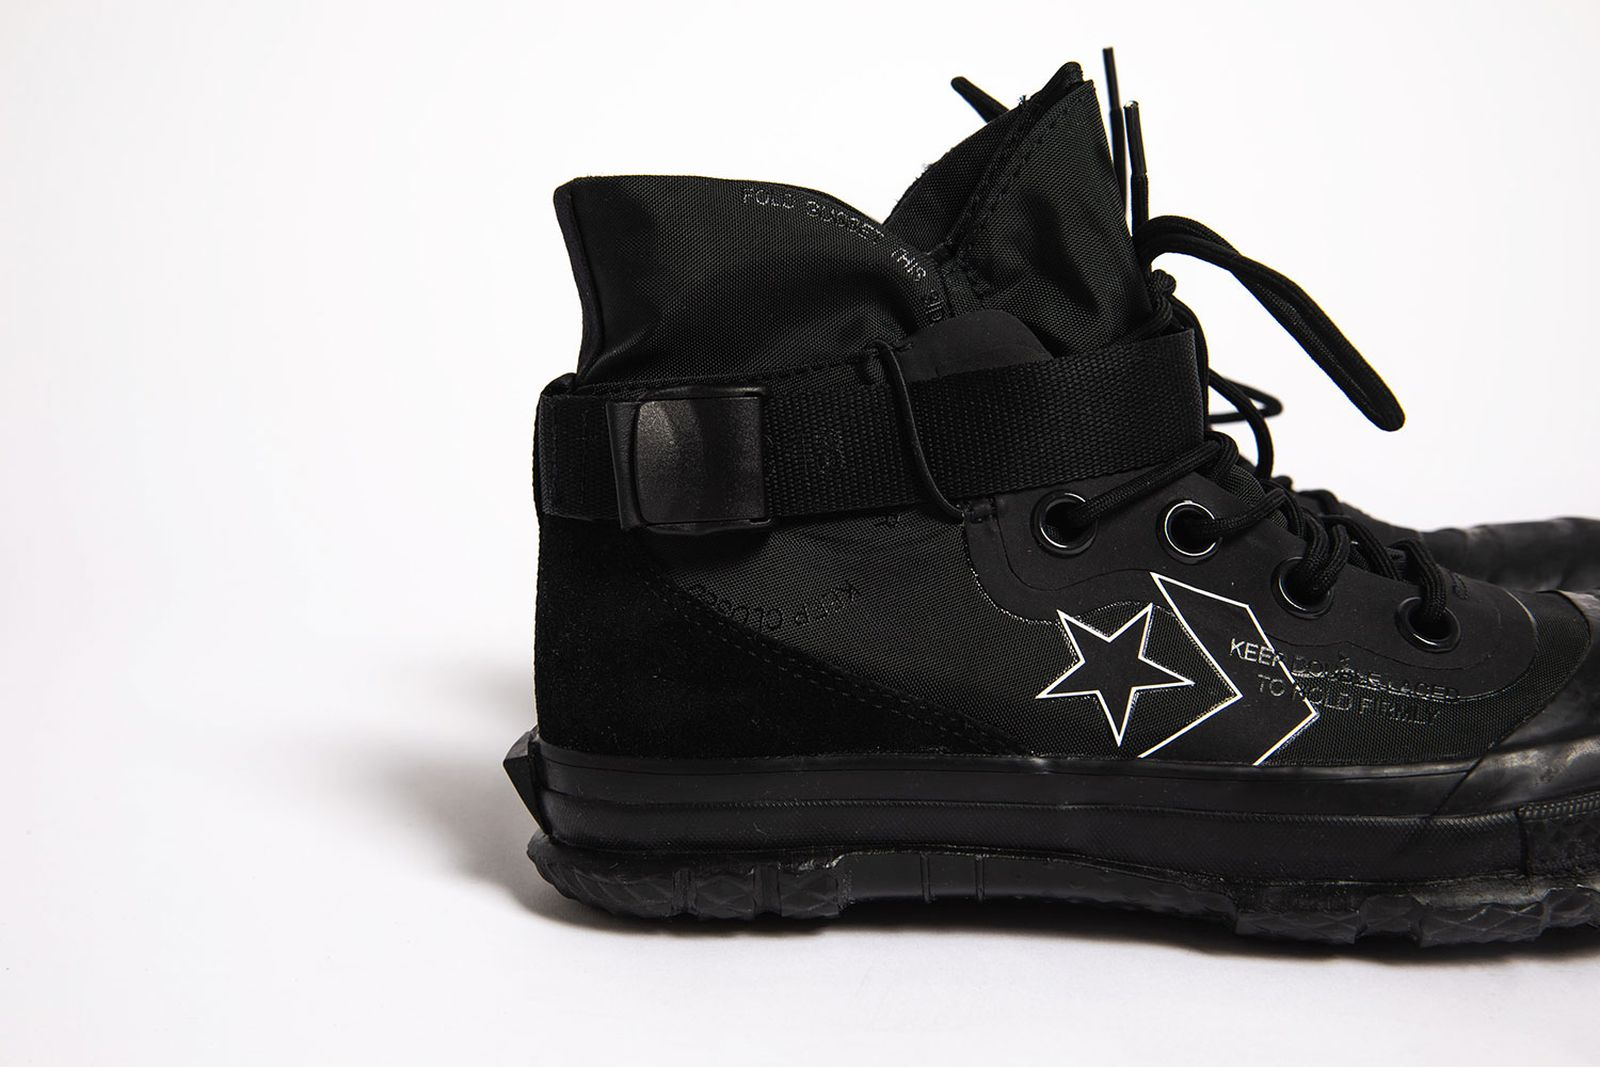 converse moutain sneakers highsnobiety Converse Fastbreak converse chuck taylor all star converse one star